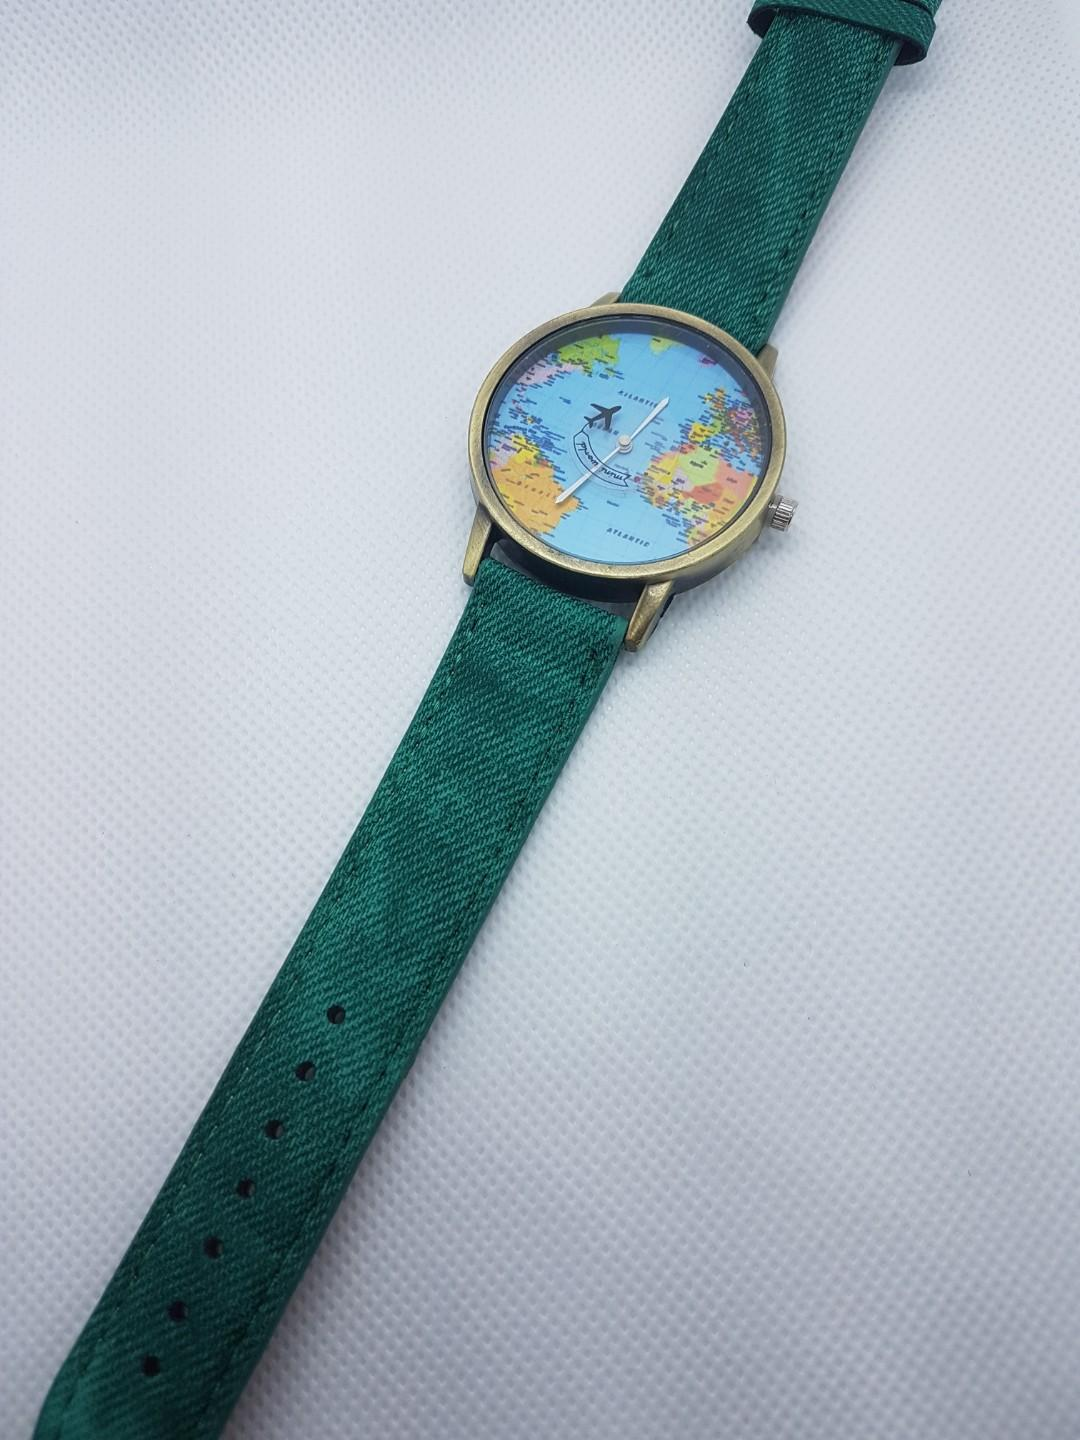 Around the world: Map watch with moving plane Green Strap ⌚ ✈